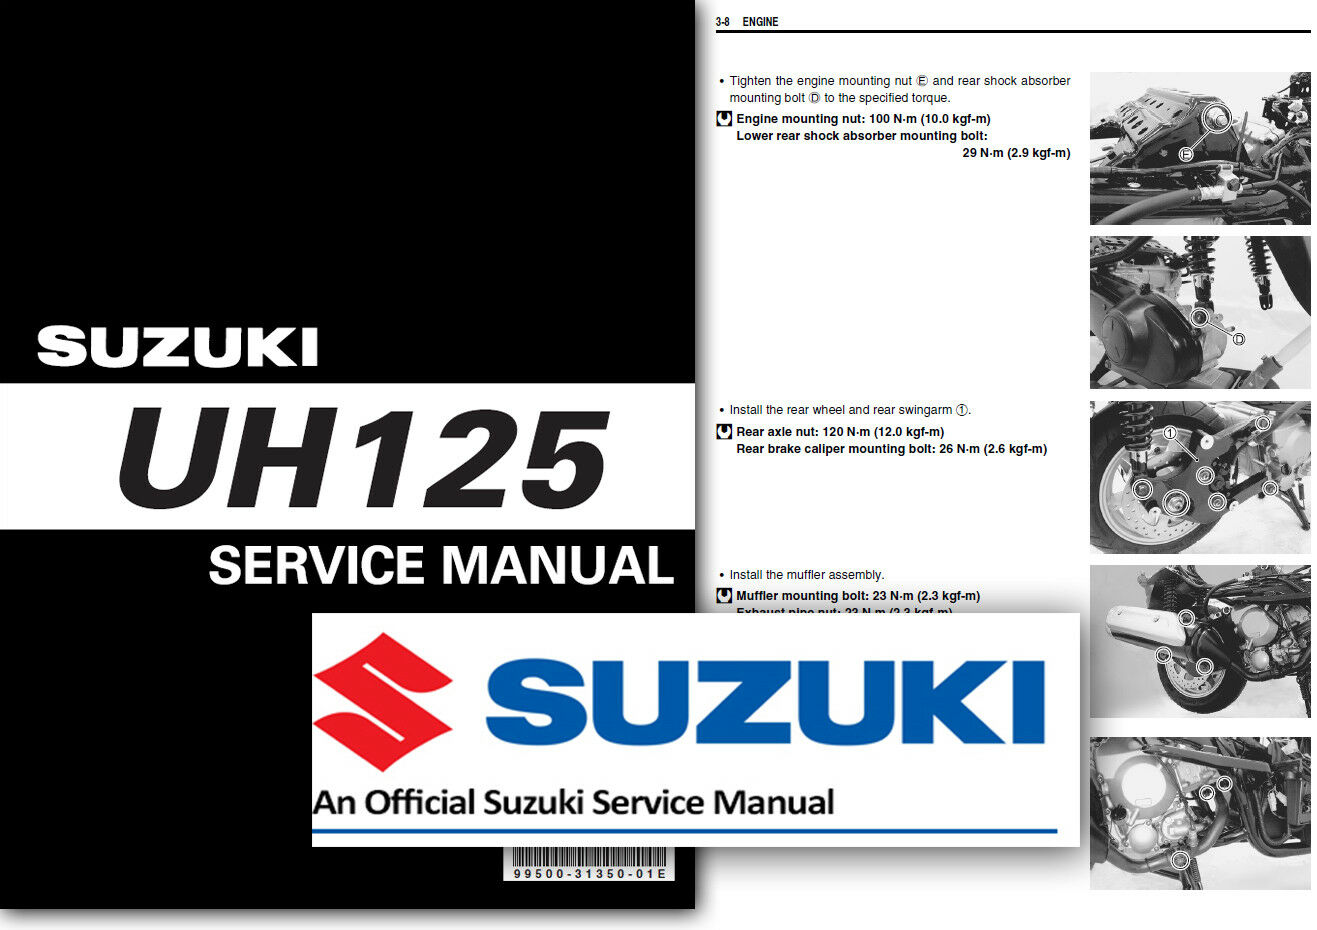 Suzuki UH125 BURGMAN Workshop Service Shop Repair Manual 125 Scooter 2007  onward 1 of 2FREE Shipping ...